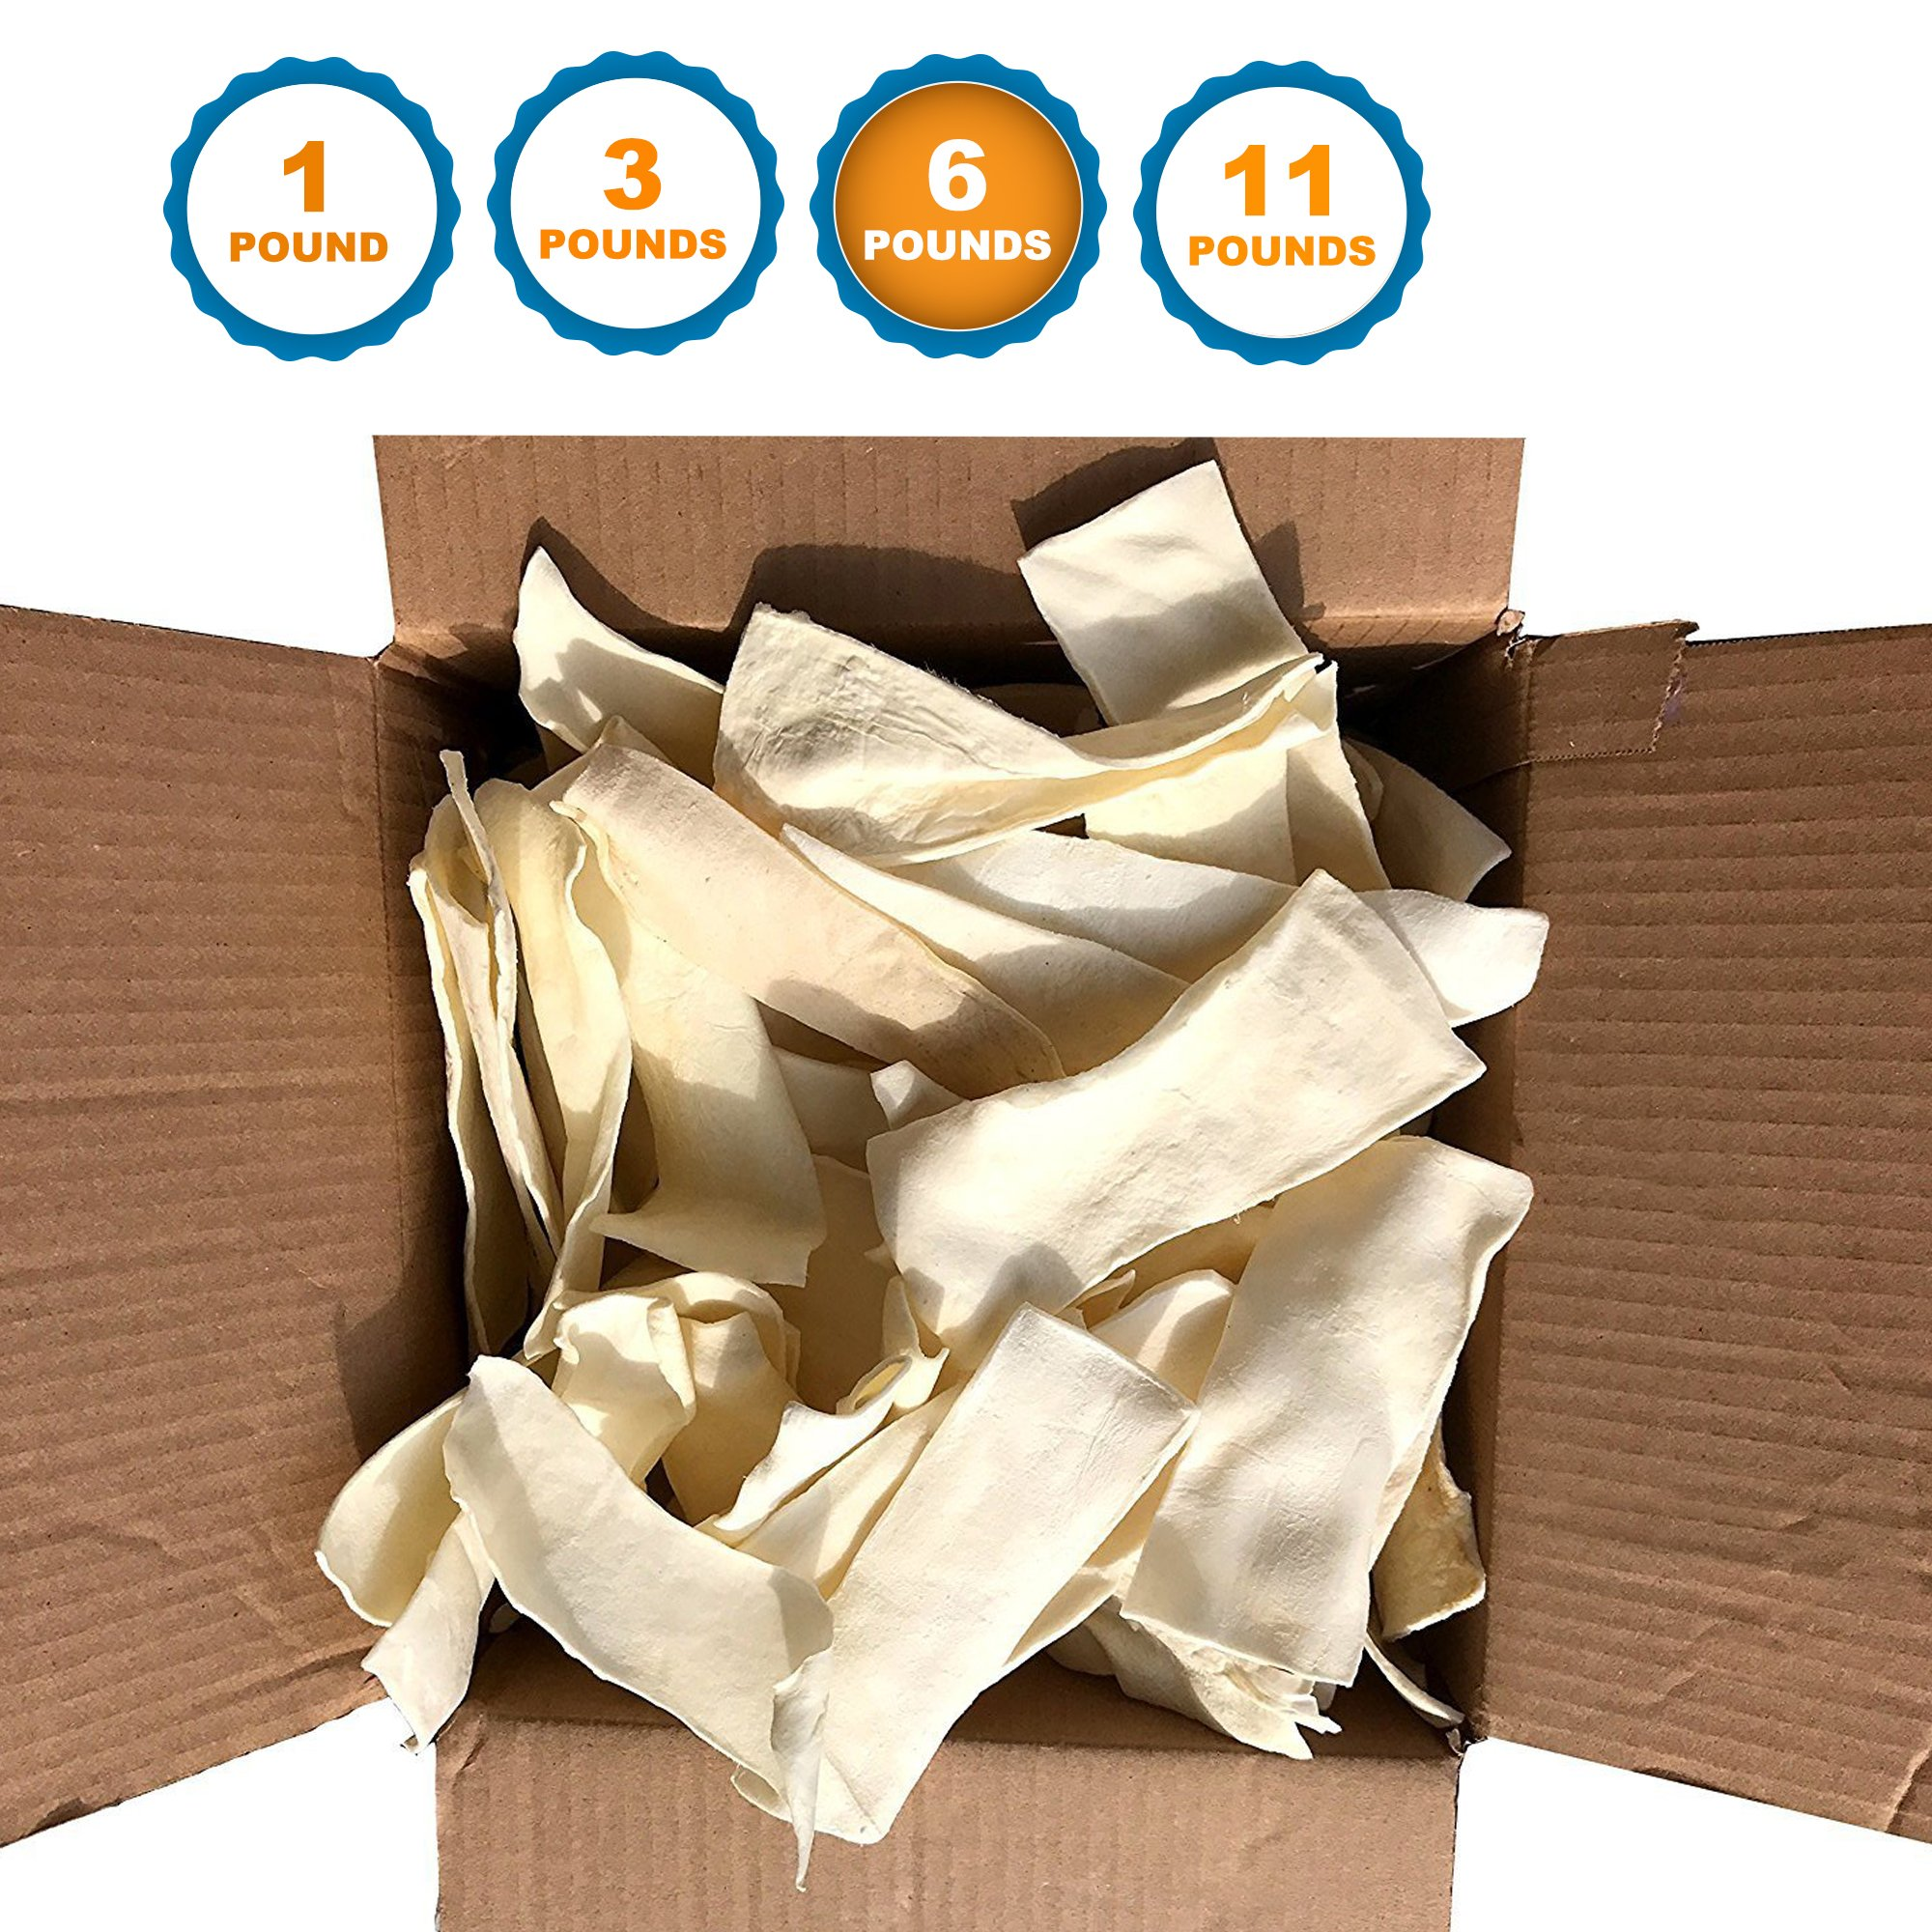 123 Treats - Rawhide Chips for Dogs (6 Pounds) Quality Bulk Dog Chews - No Additives, Chemicals or Hormones From Natural Grass Fed Livestock